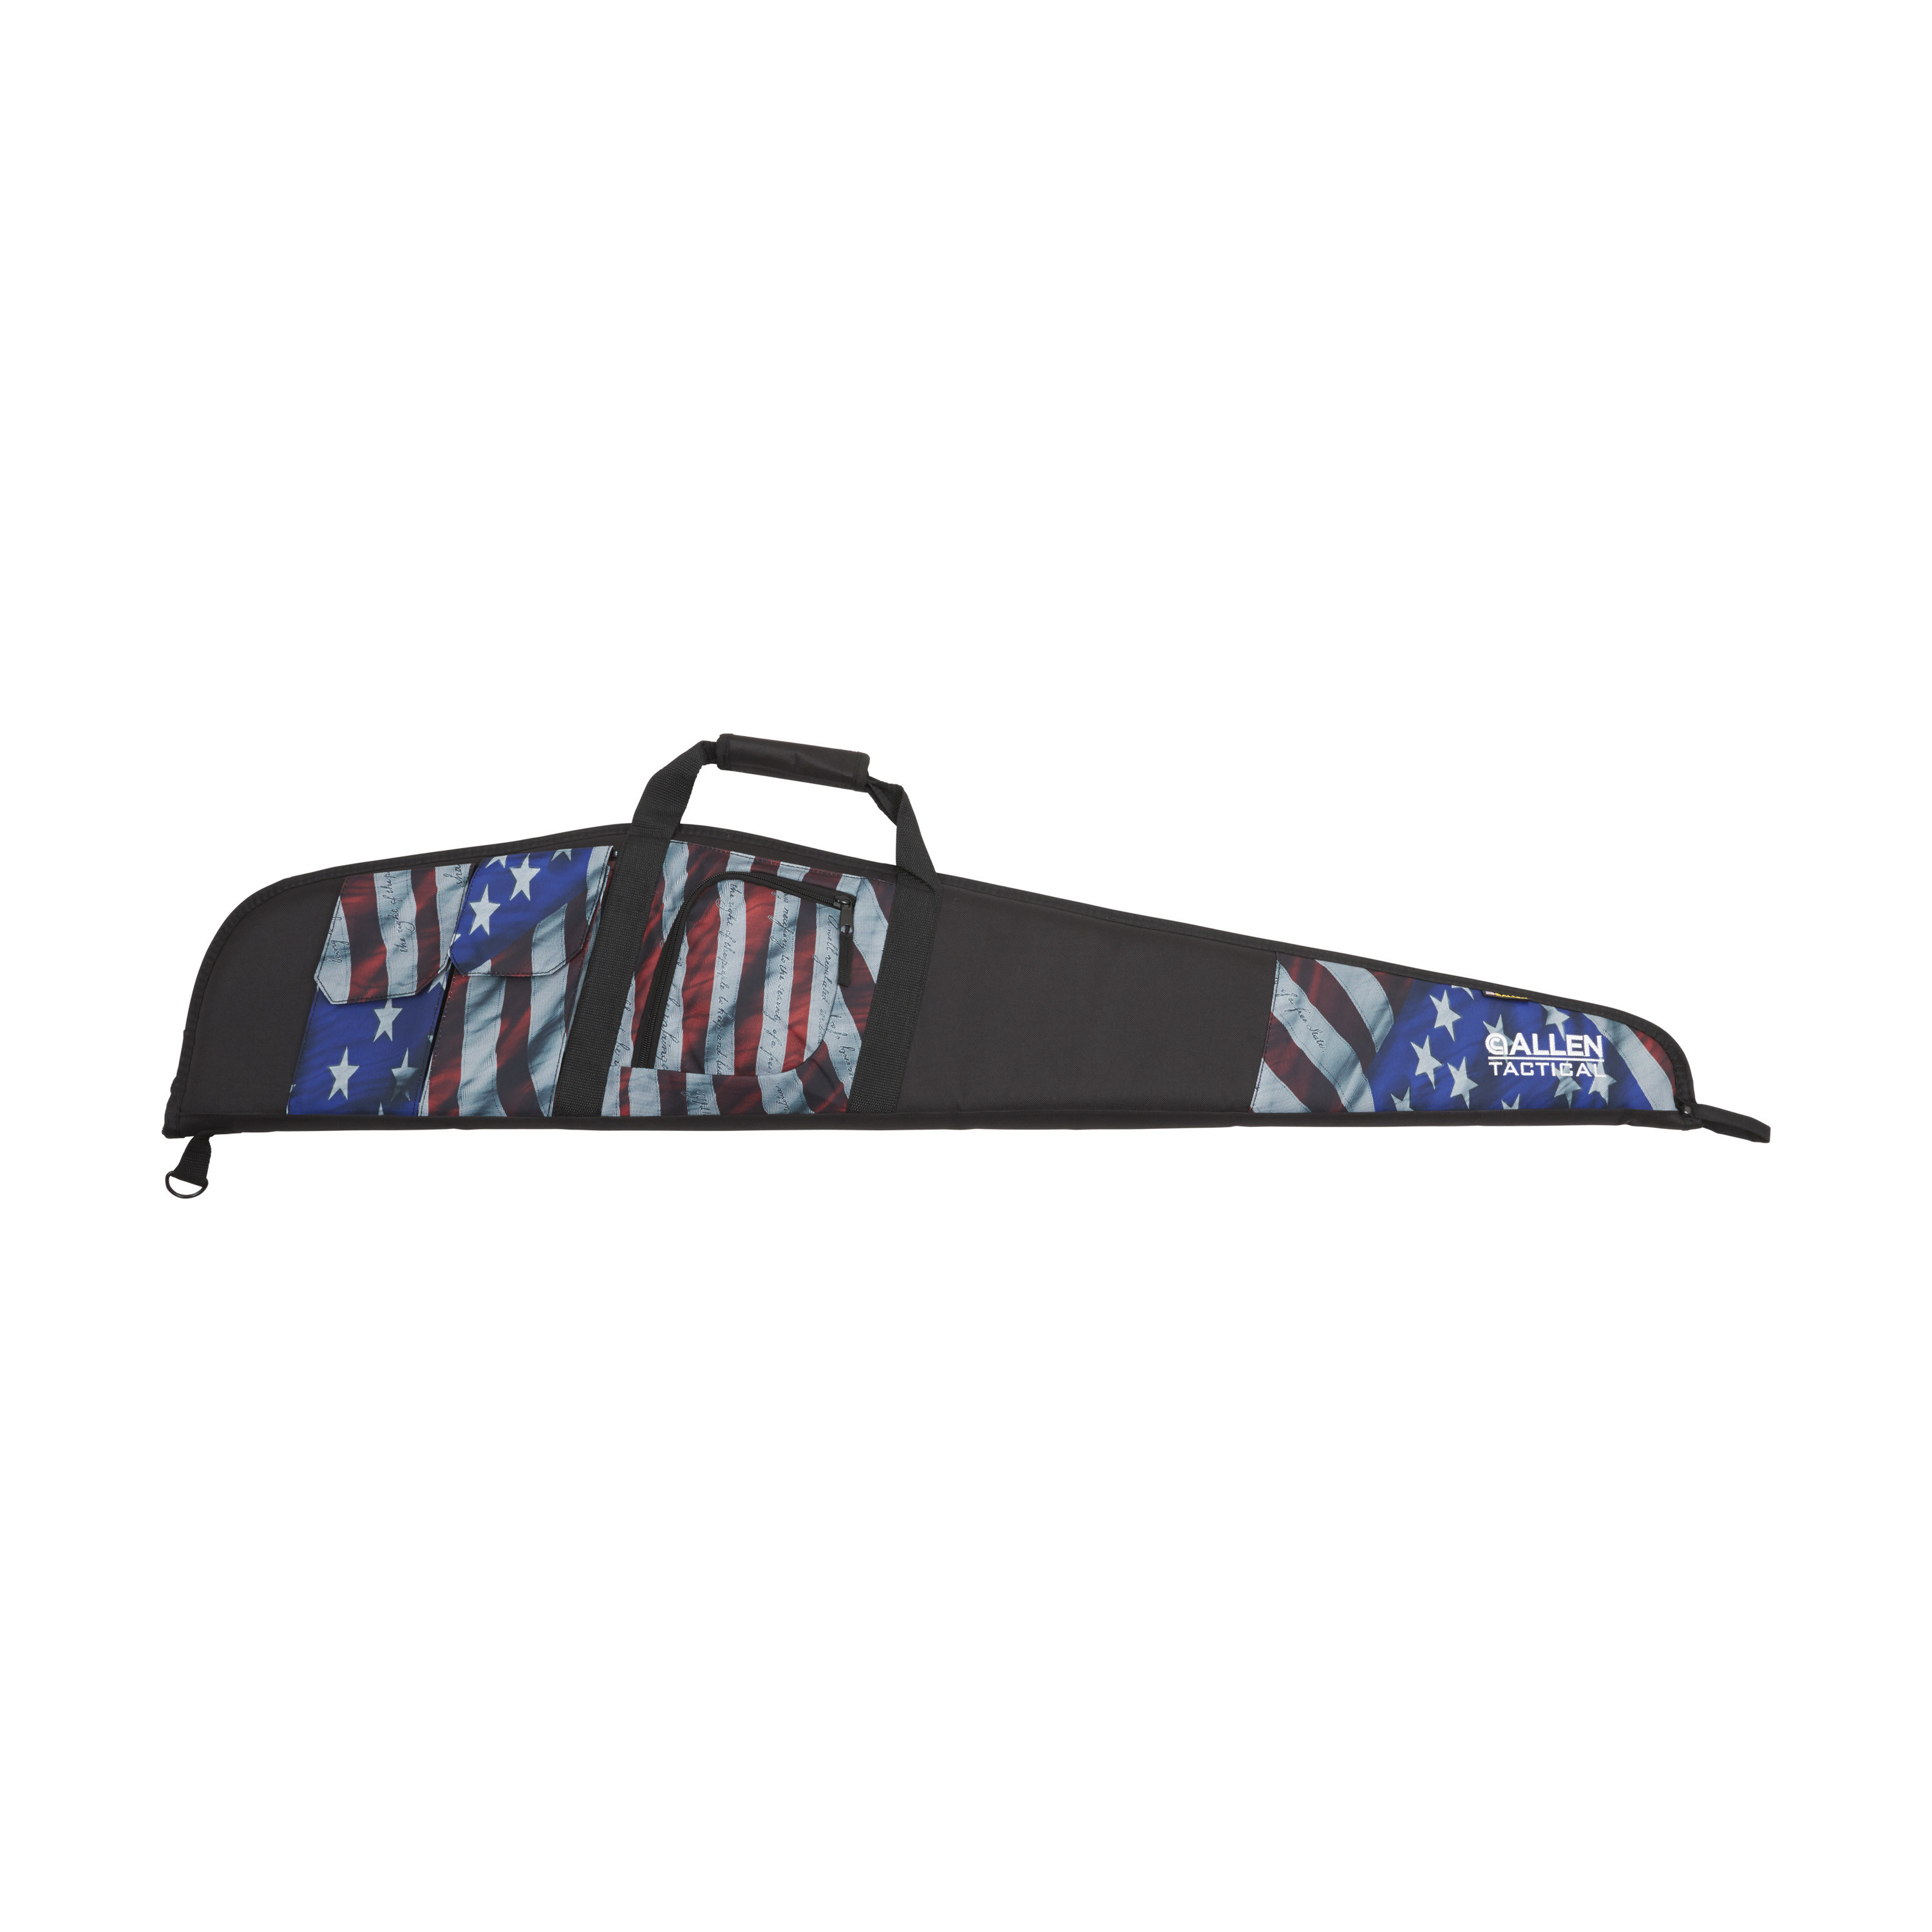 Allen Victory Scoped Rifle Case - 48